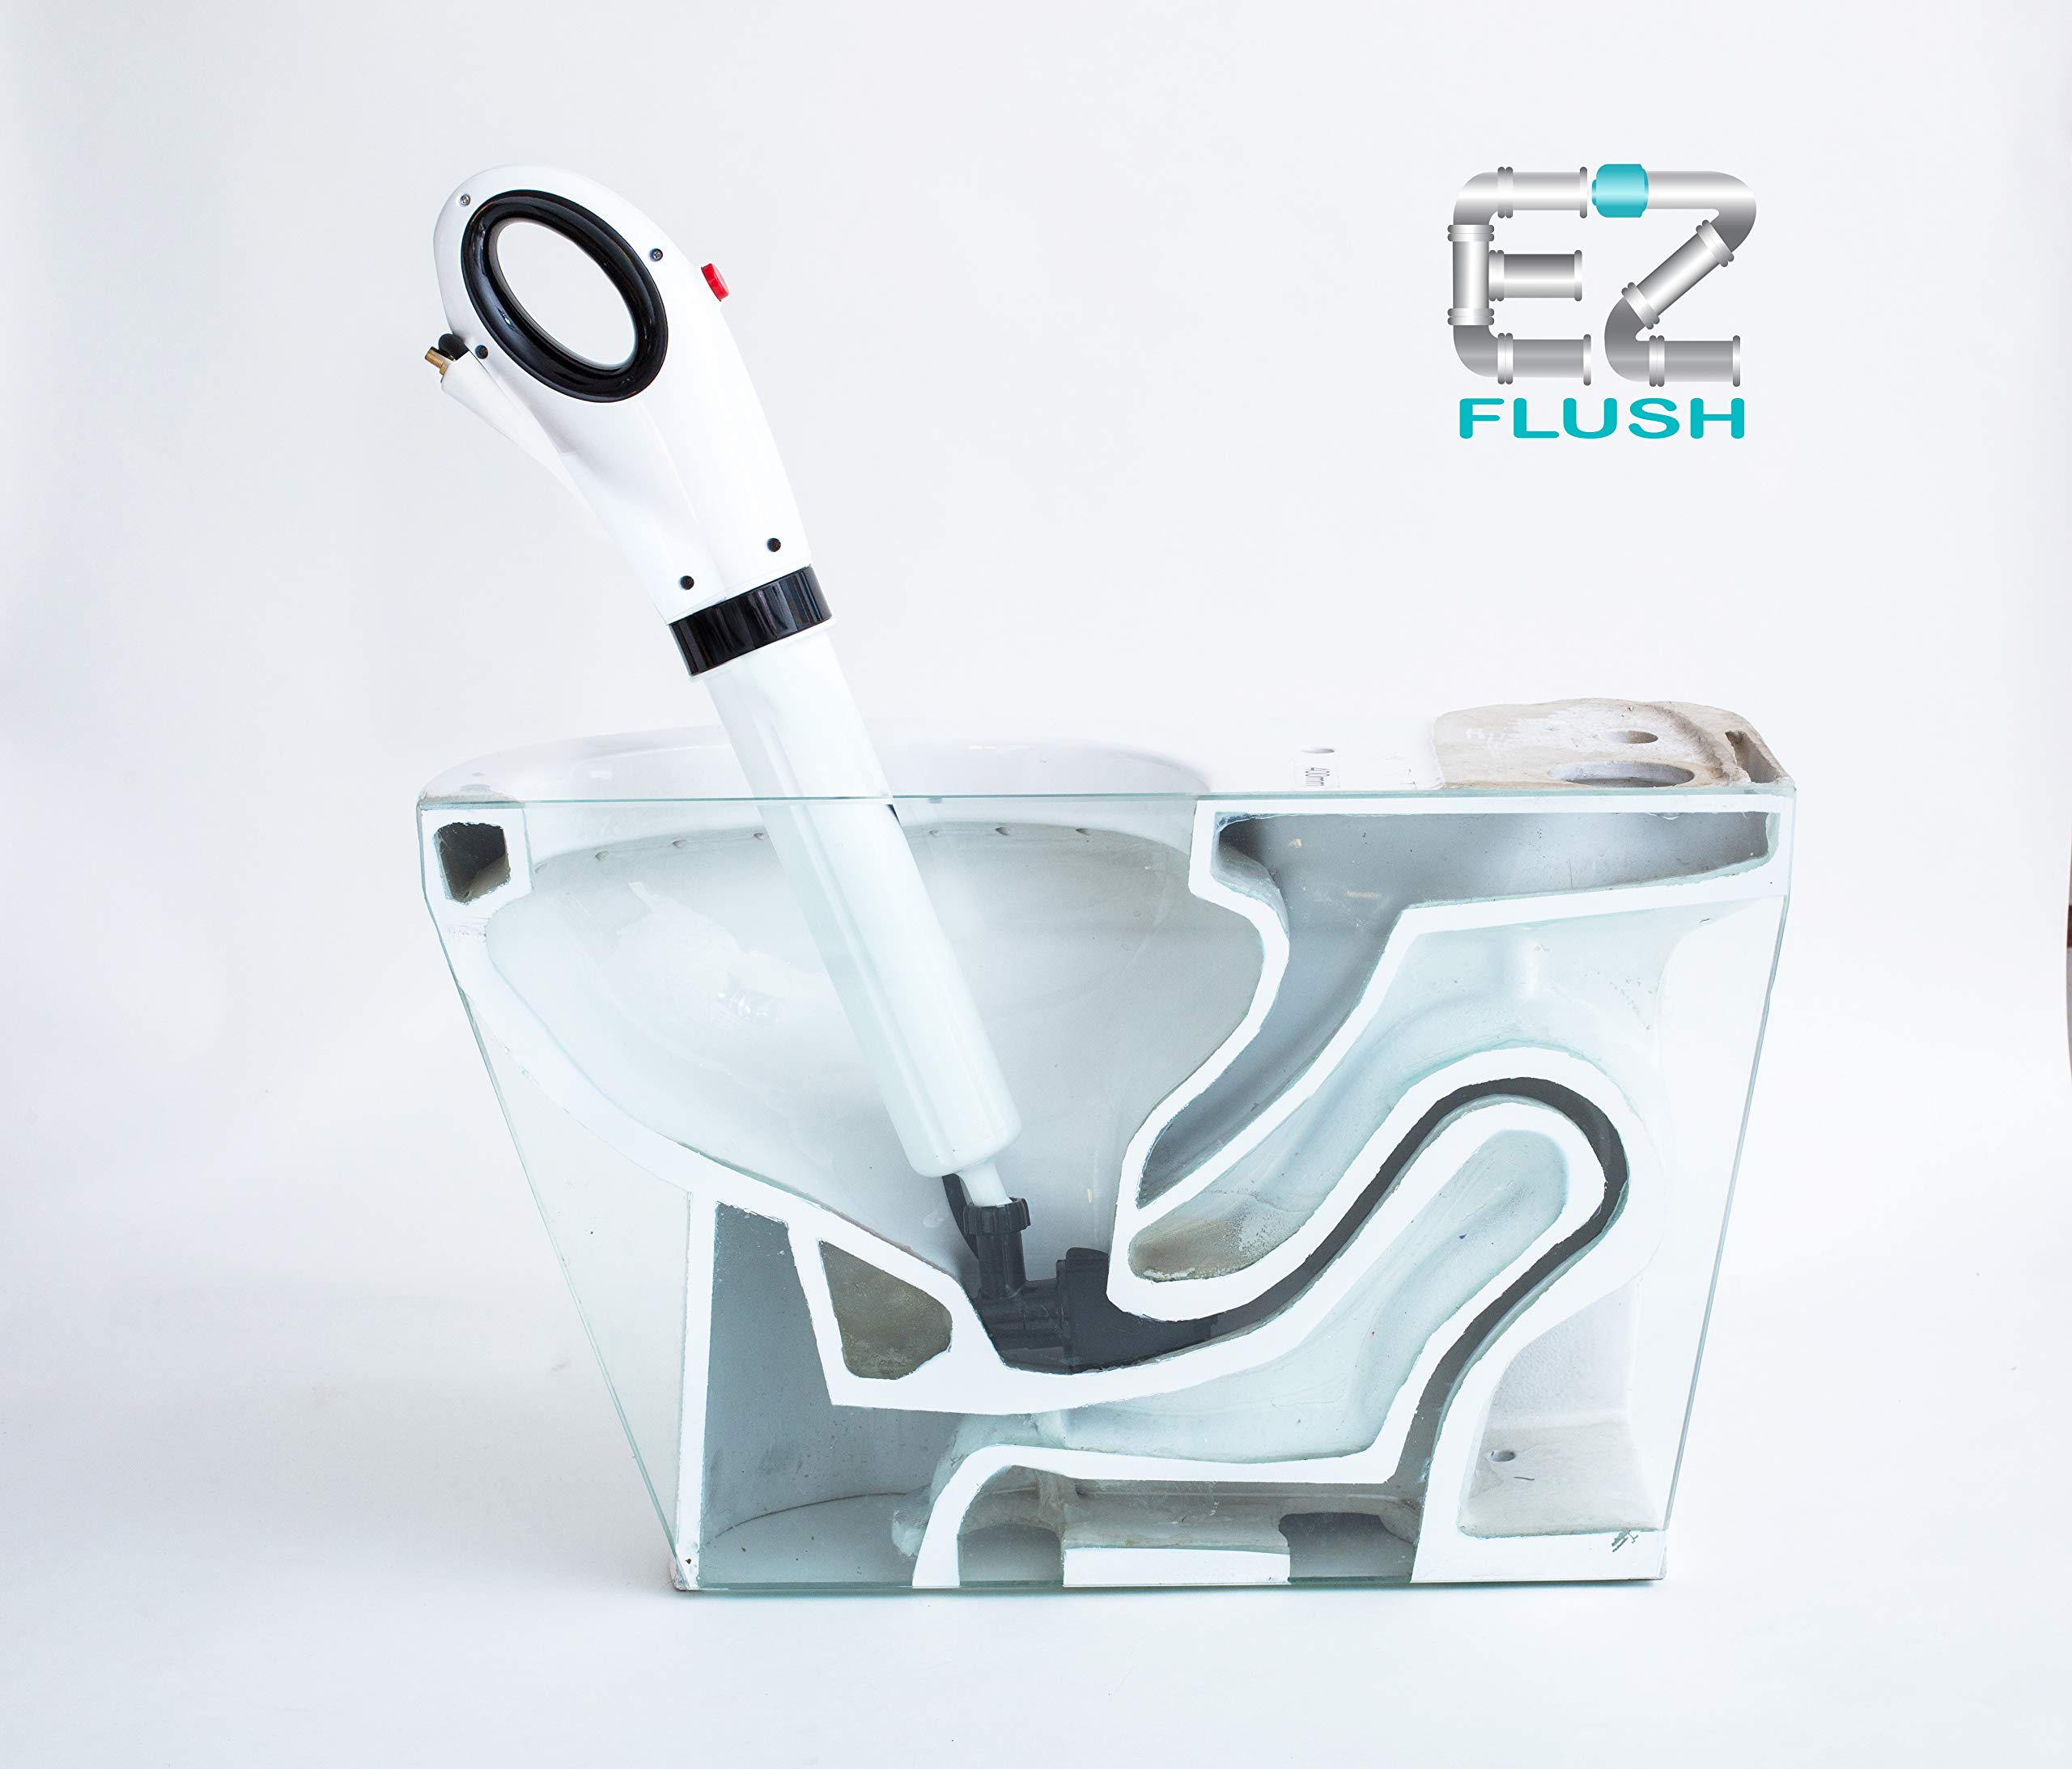 EZ Flush EZ168528 Toilet Plunger, Shower and Bath Tubs Sinks Air Pressured Professional Grade Removal Clog and Grease, White